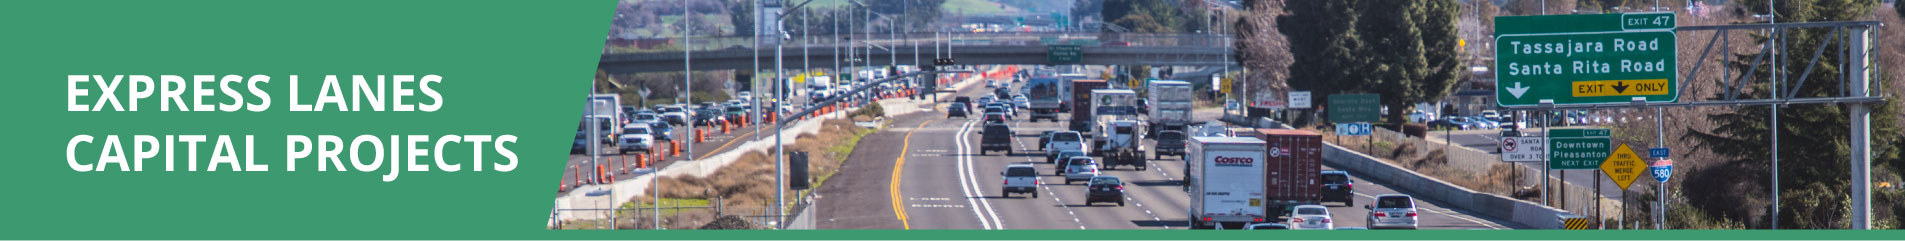 Express Lanes Capital Projects